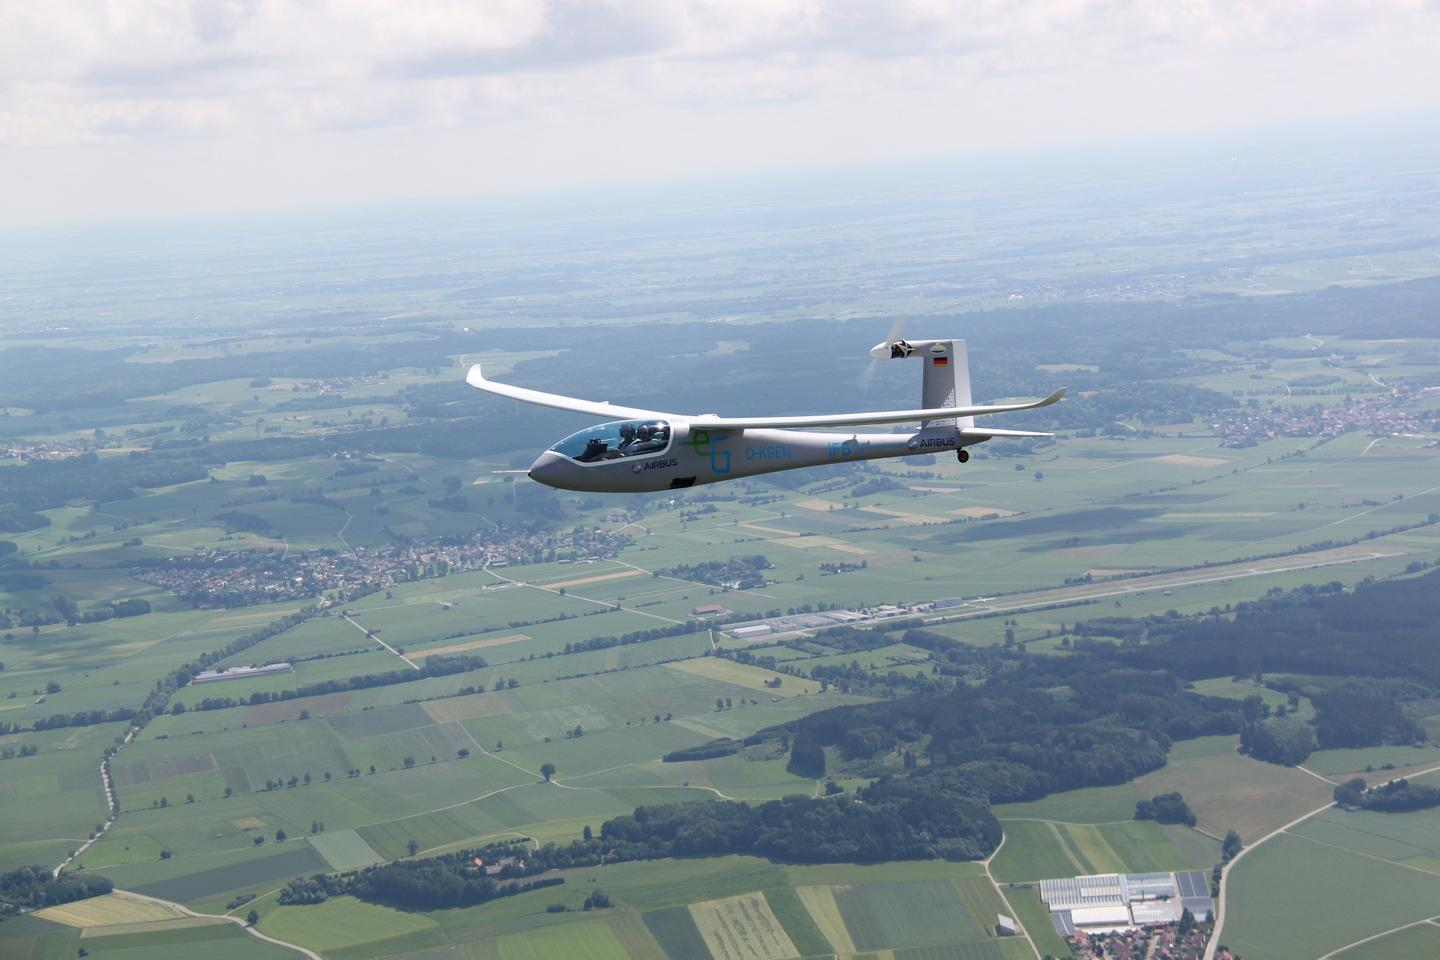 The e-Genius concept electric aircraft has managed a record-breaking flight of over two hours at an average speed of 100 mph over a distance of 211 miles